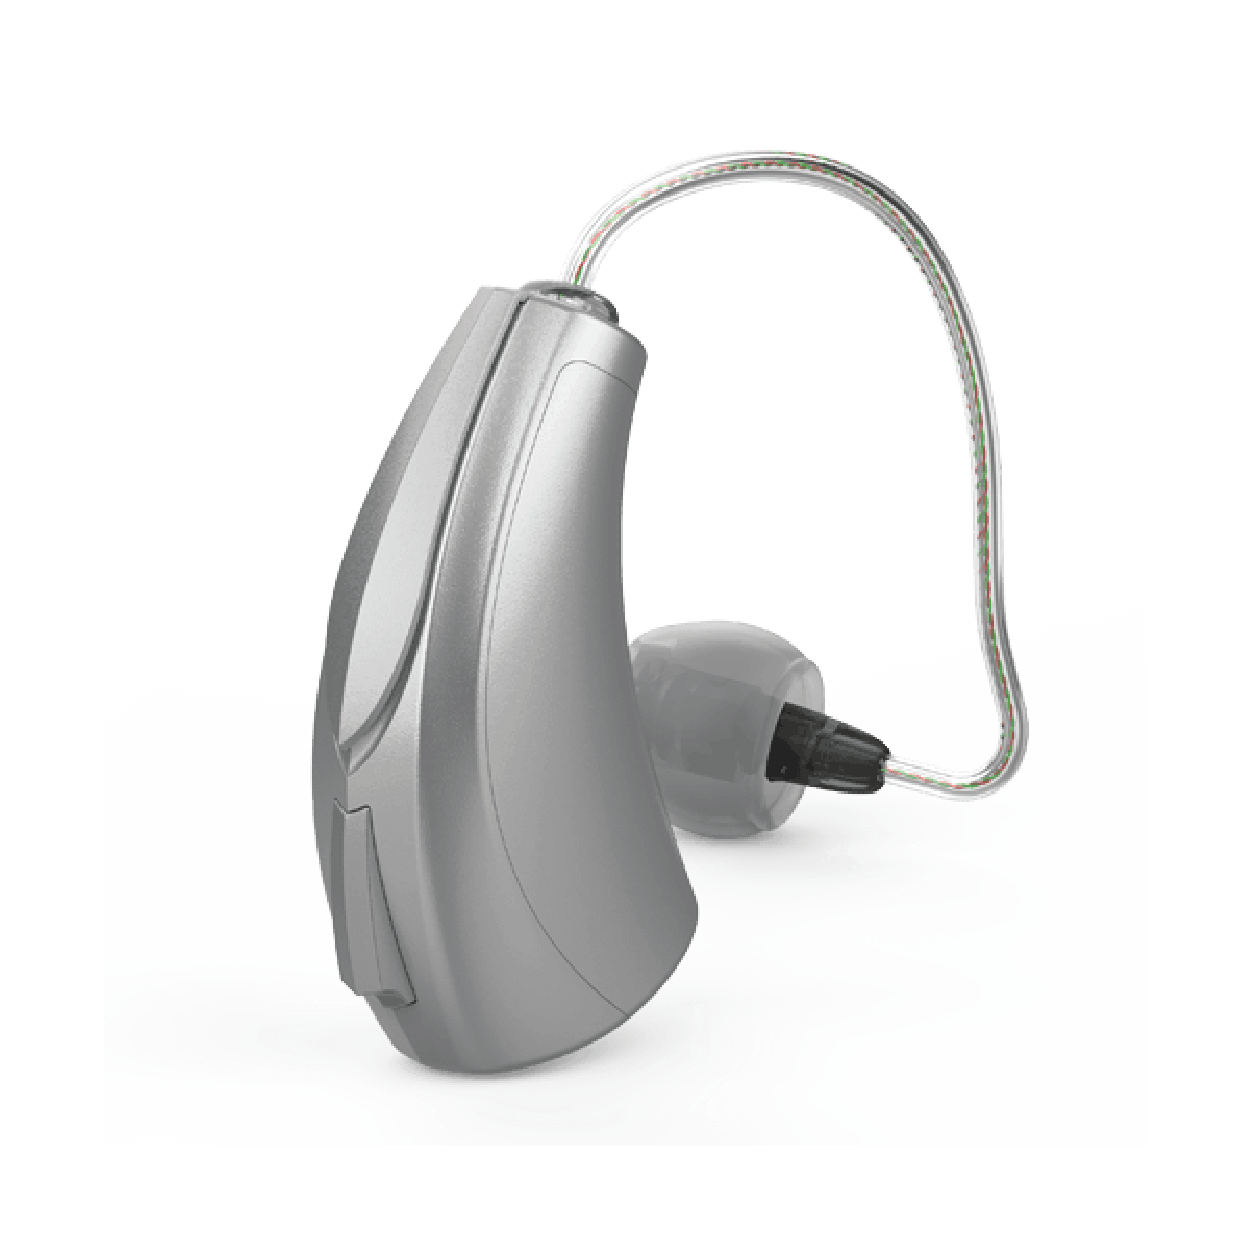 Starkey Receiver in Canal hearing aid